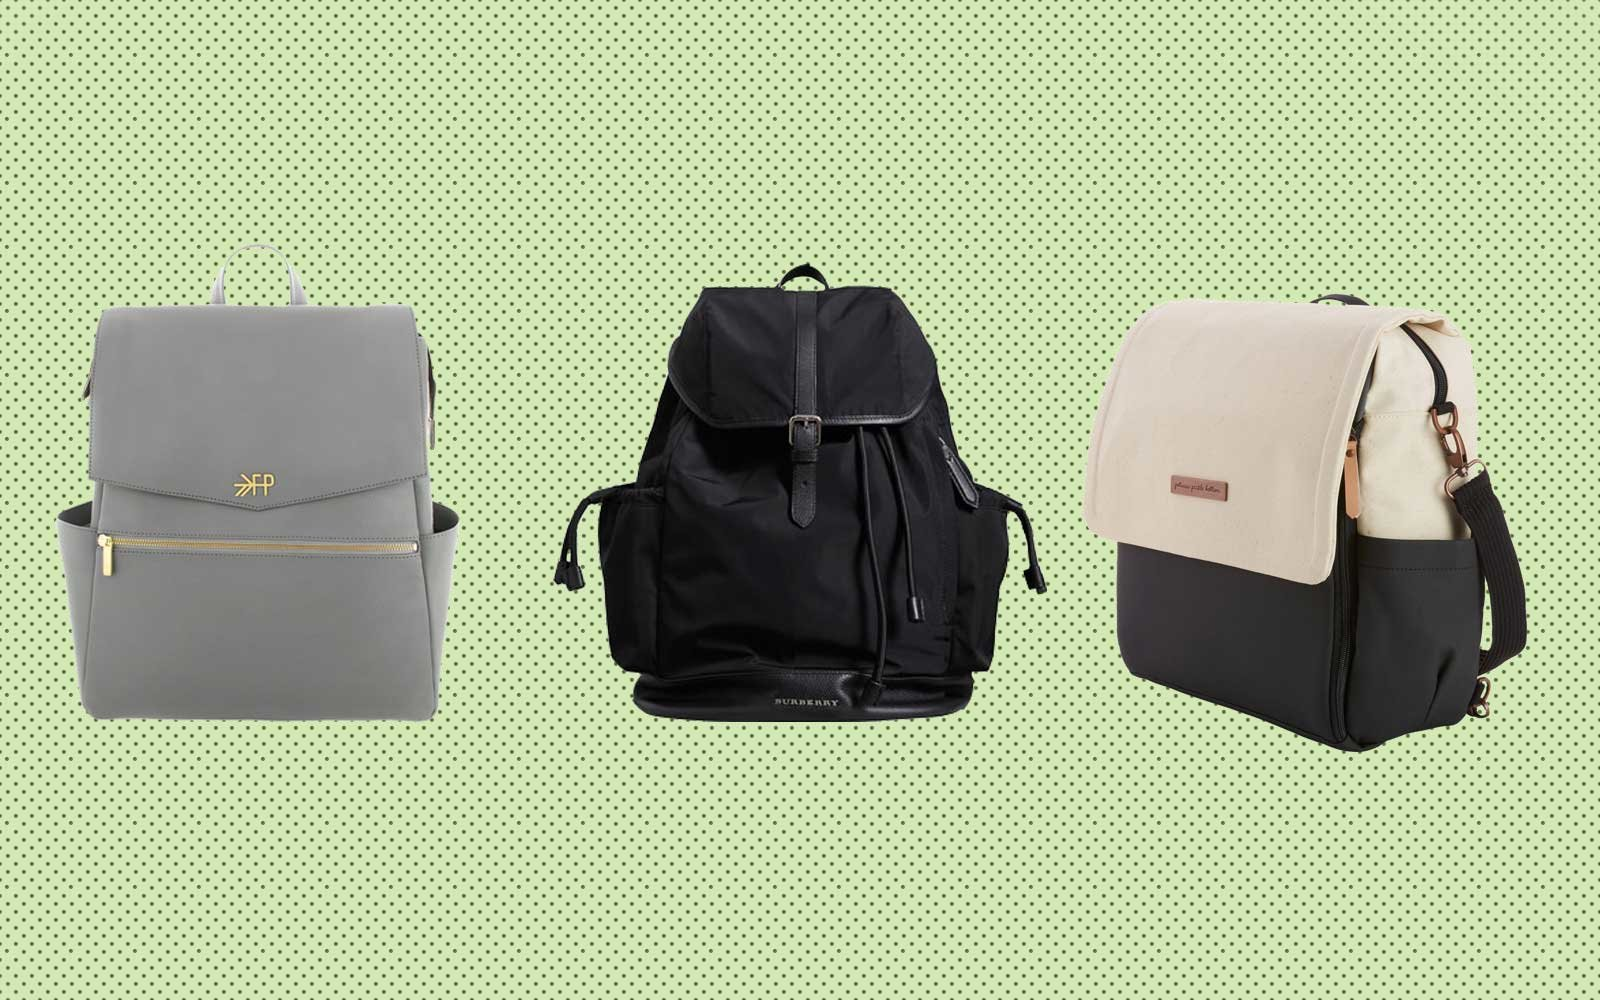 Chic Diaper Bags for Travel